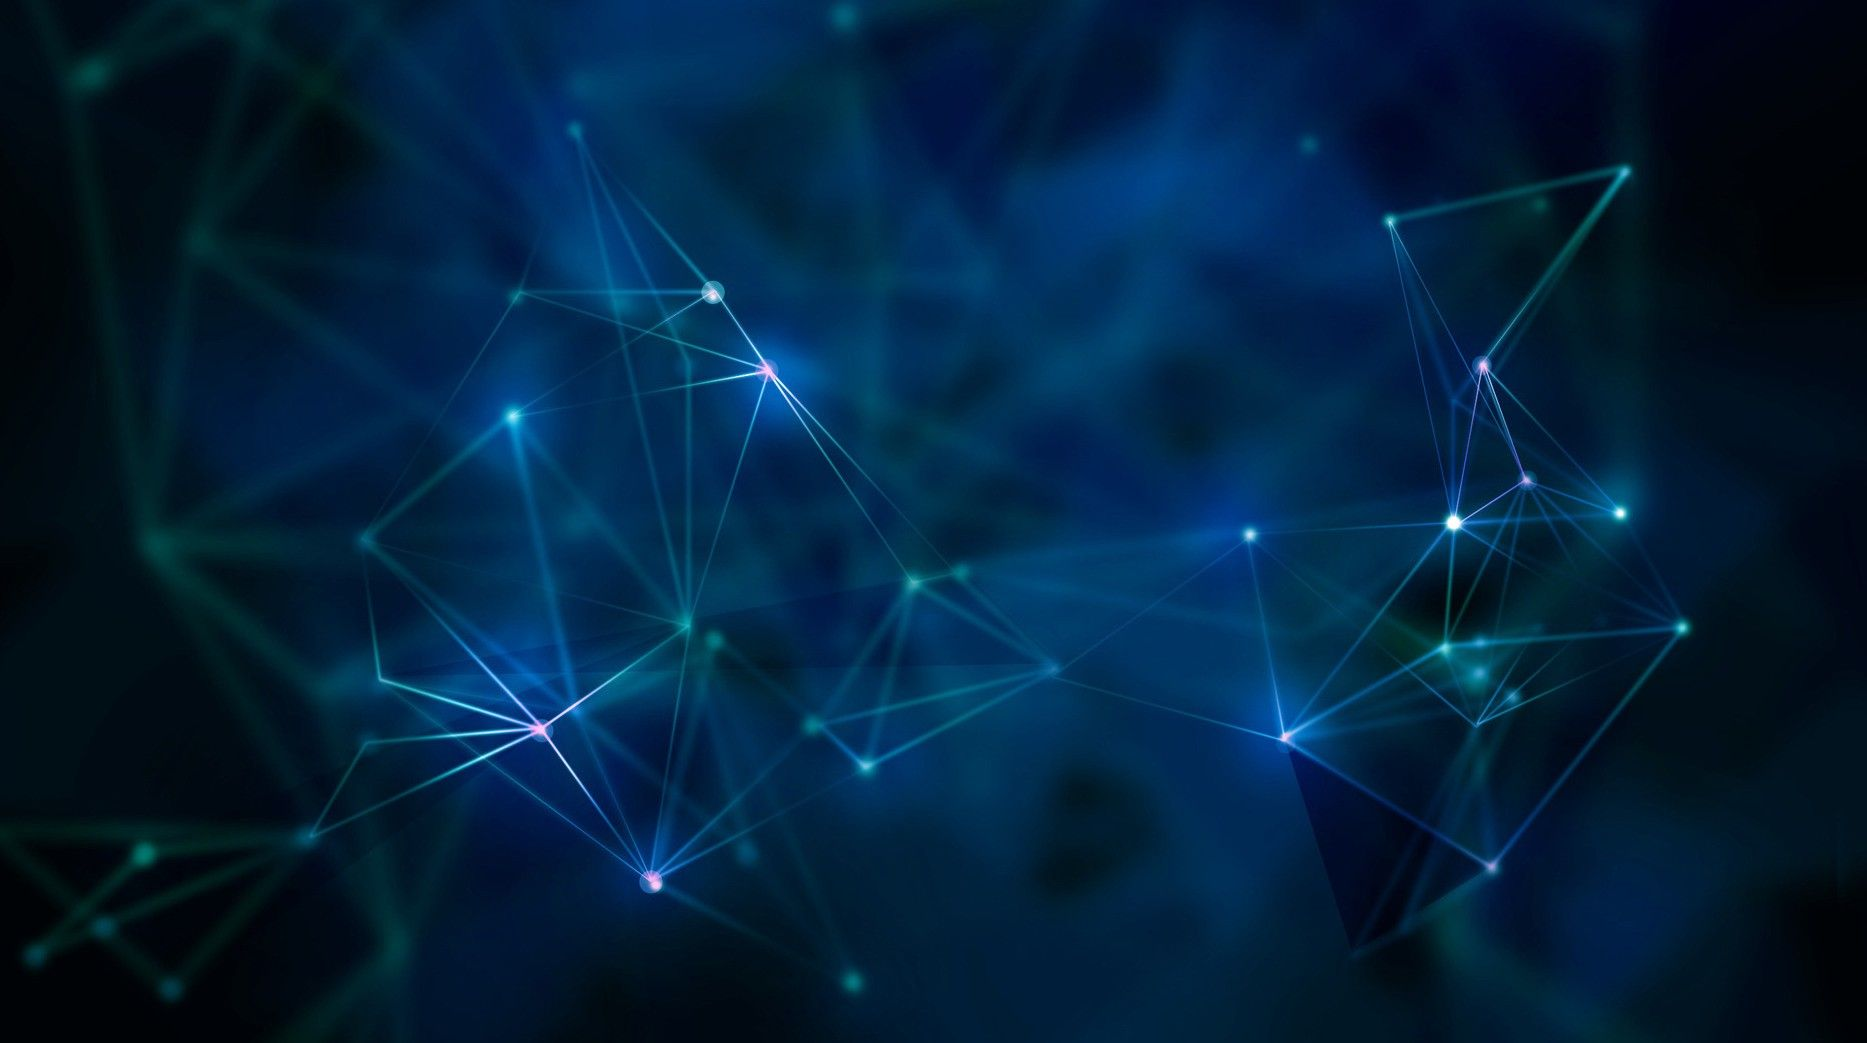 Simple Neural Network Implementation In C Hd Wallpapers For Laptop Networking Digital Wallpaper